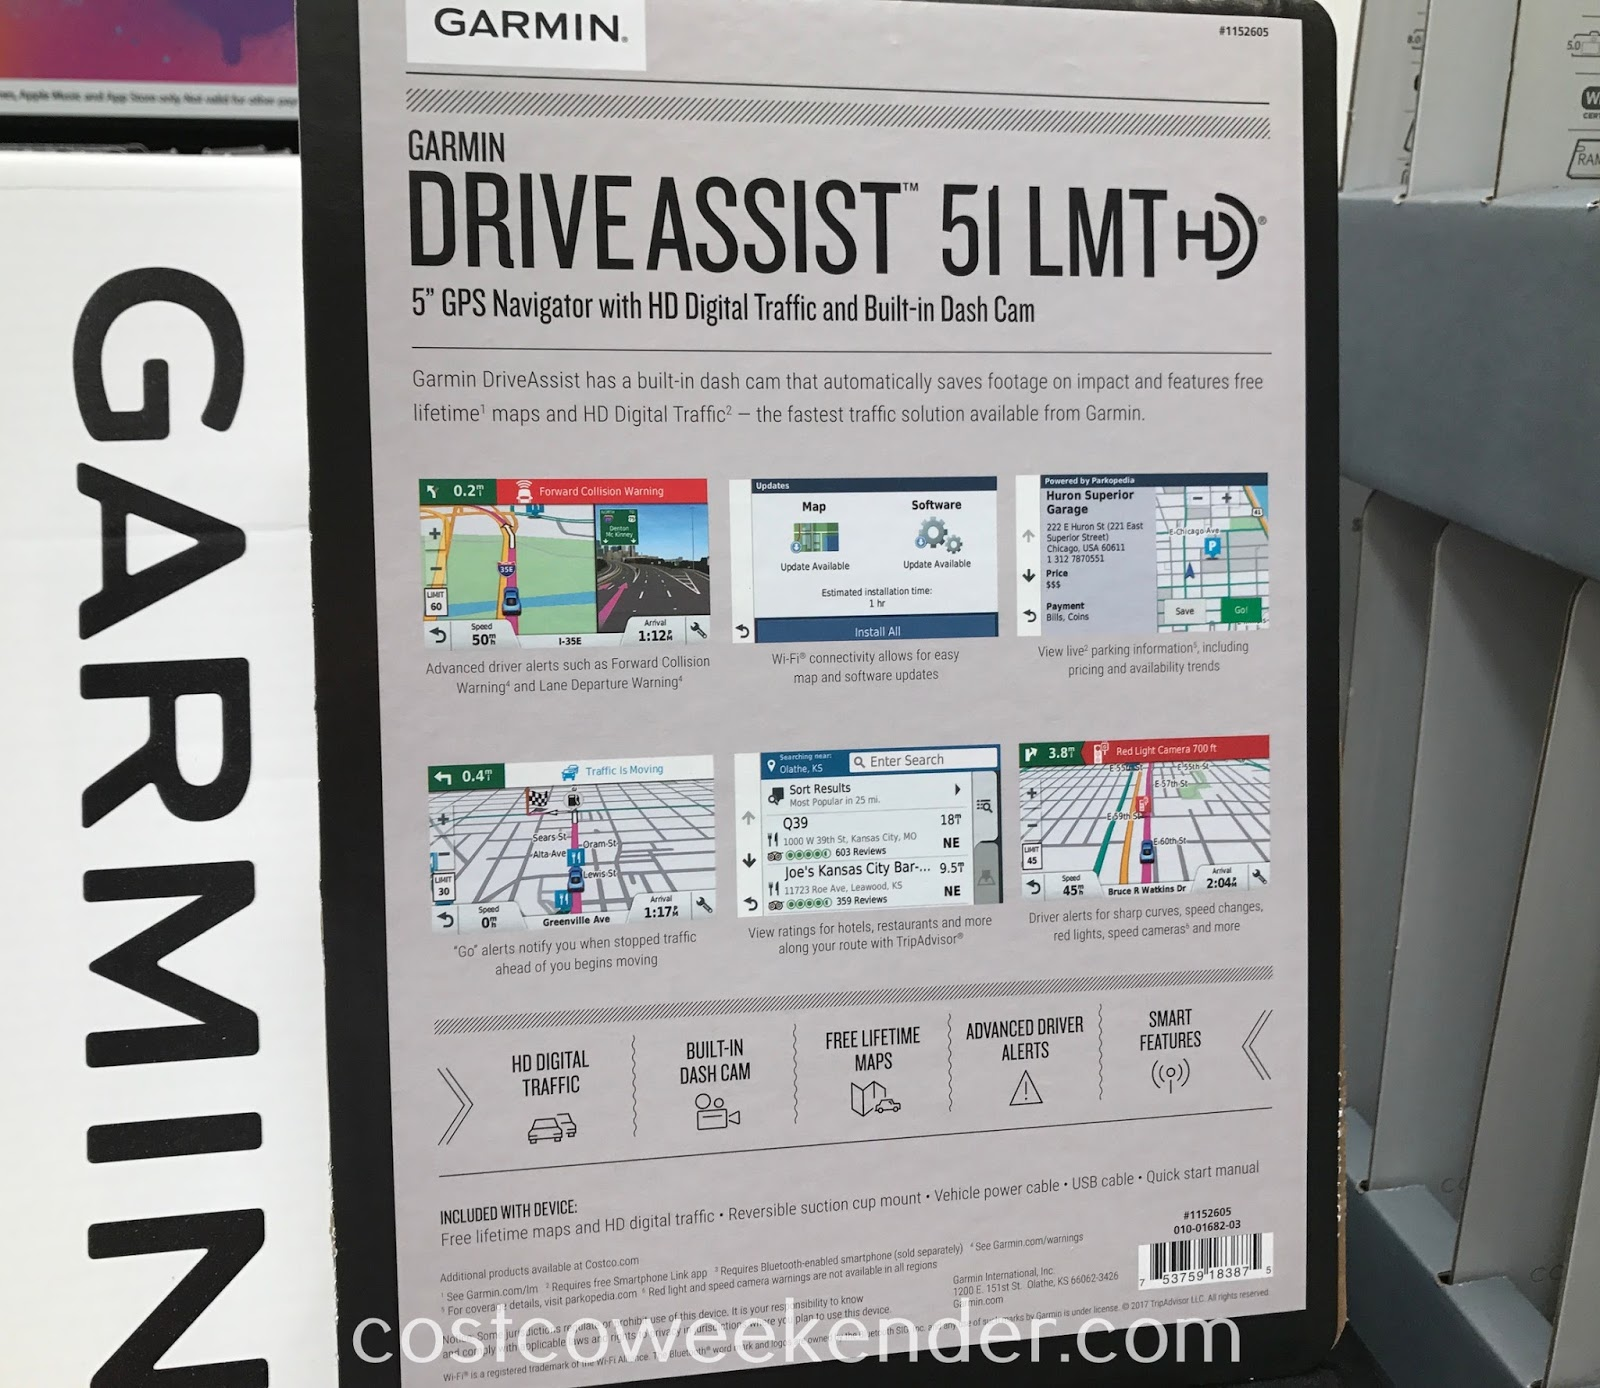 Costco 1152605 - Never get lost again with the Garmin DriveAssist 51 LMT GPS